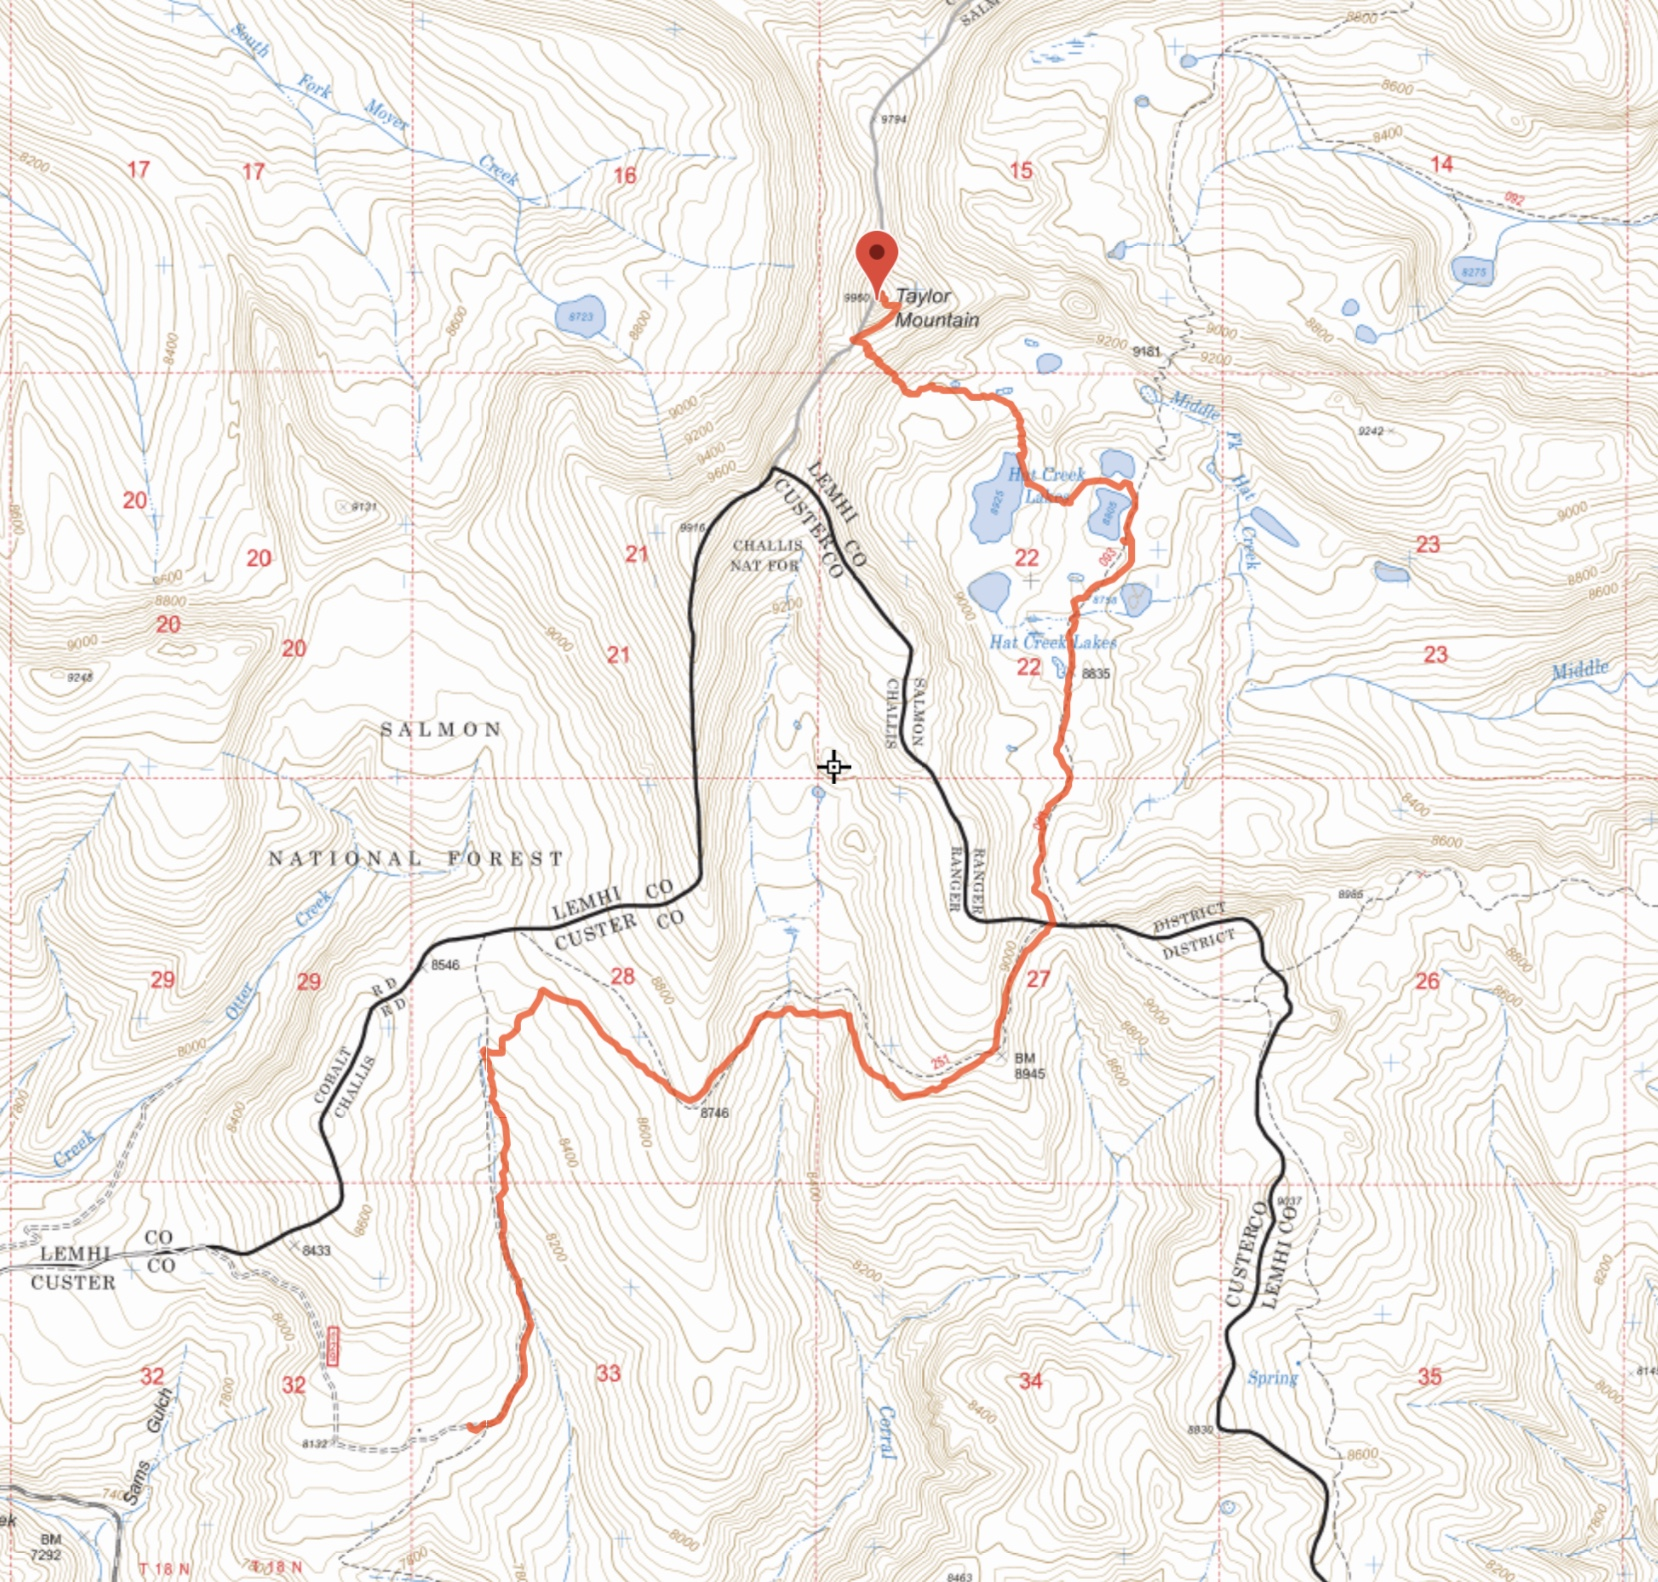 Ken Jones' GPS track. His round trip totals were 11.8 miles with 3,150 of gain (625 feet on the return trip).